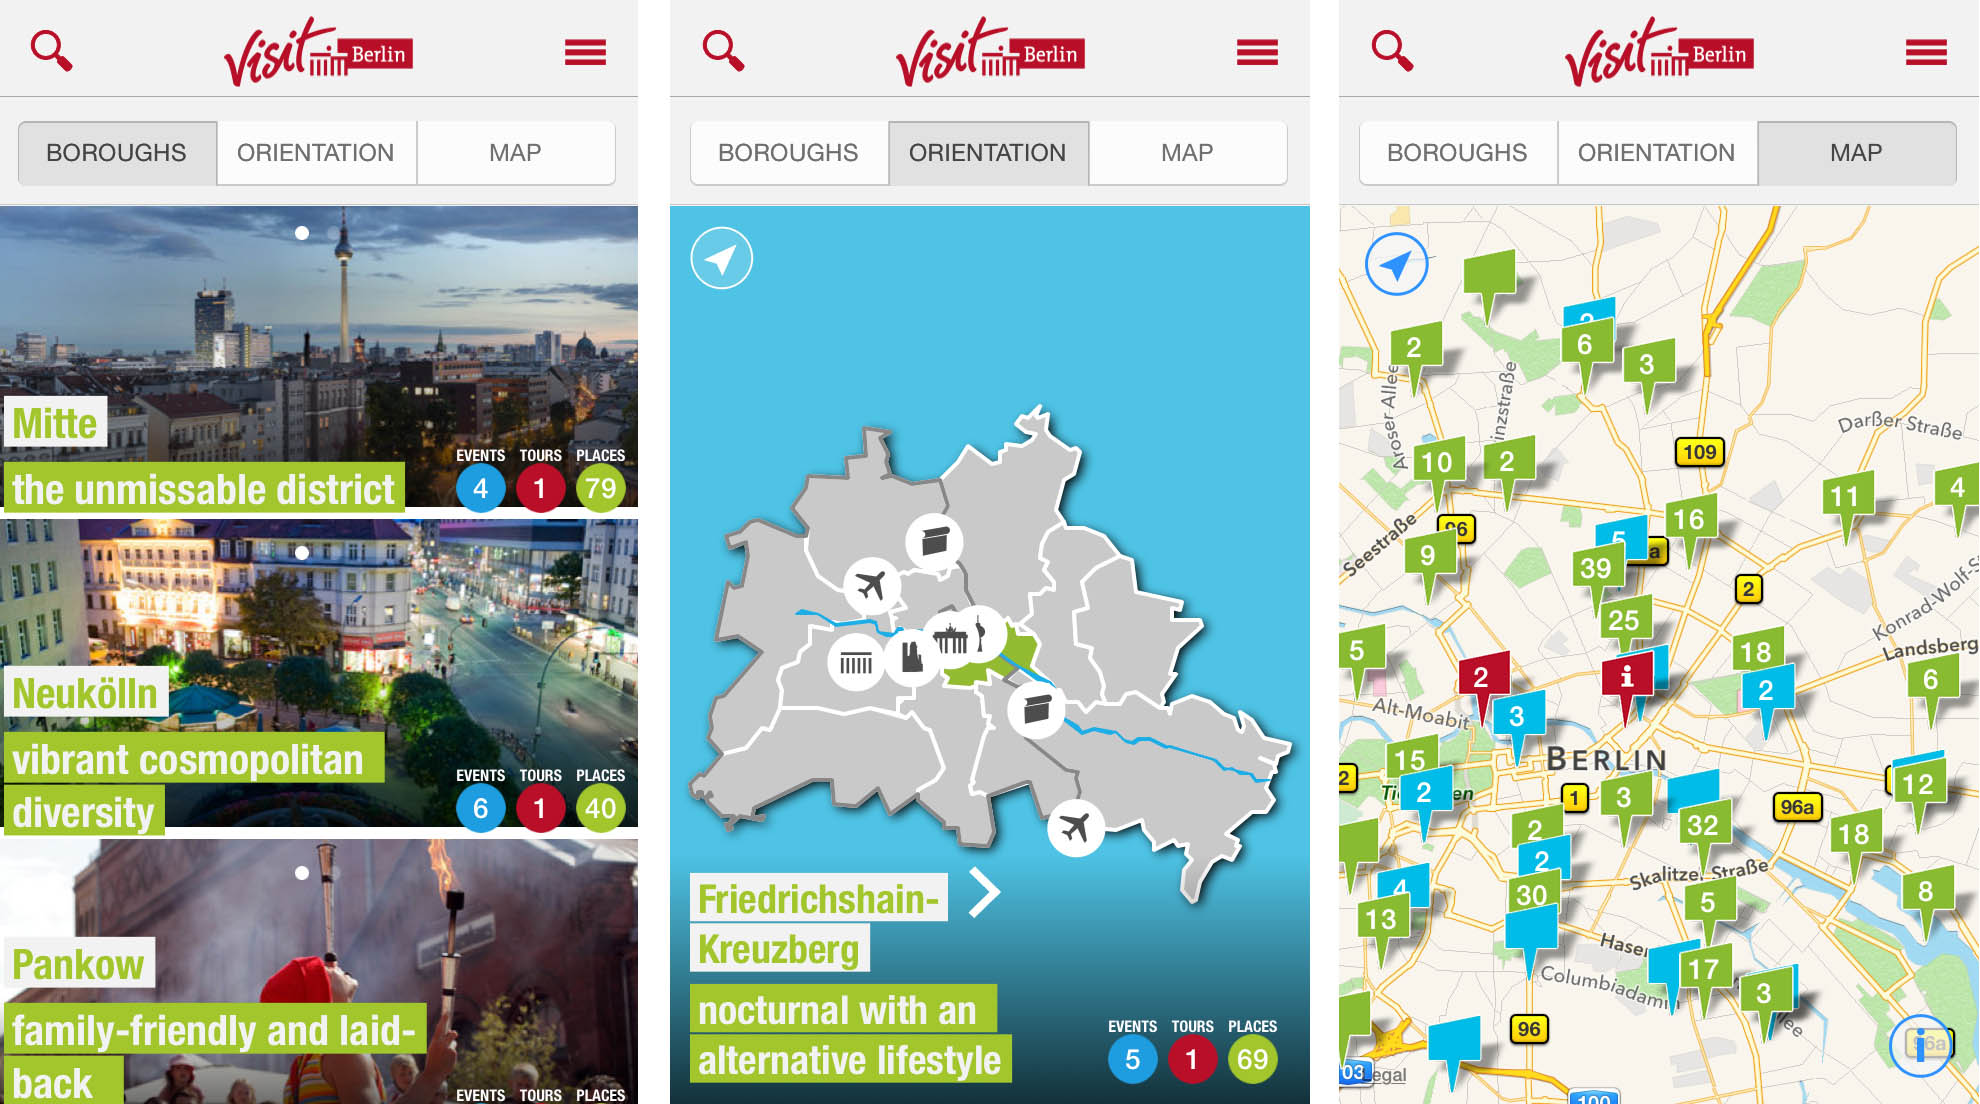 Going Local Berlin - Screenshots from the app from visitBerlin